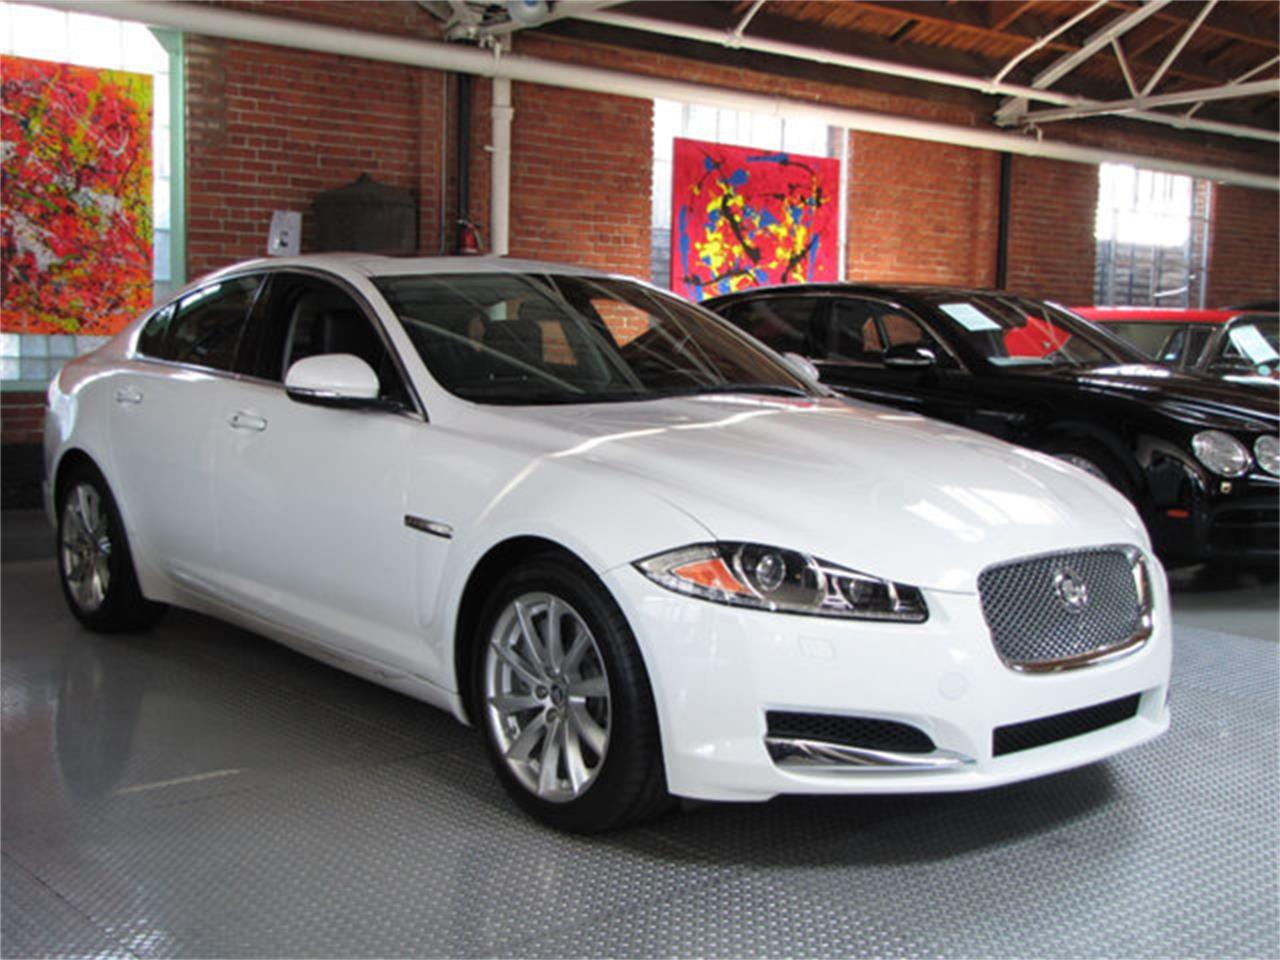 Large Picture of '13 XF located in Hollywood California Offered by JEM Motor Corp. - LEJJ